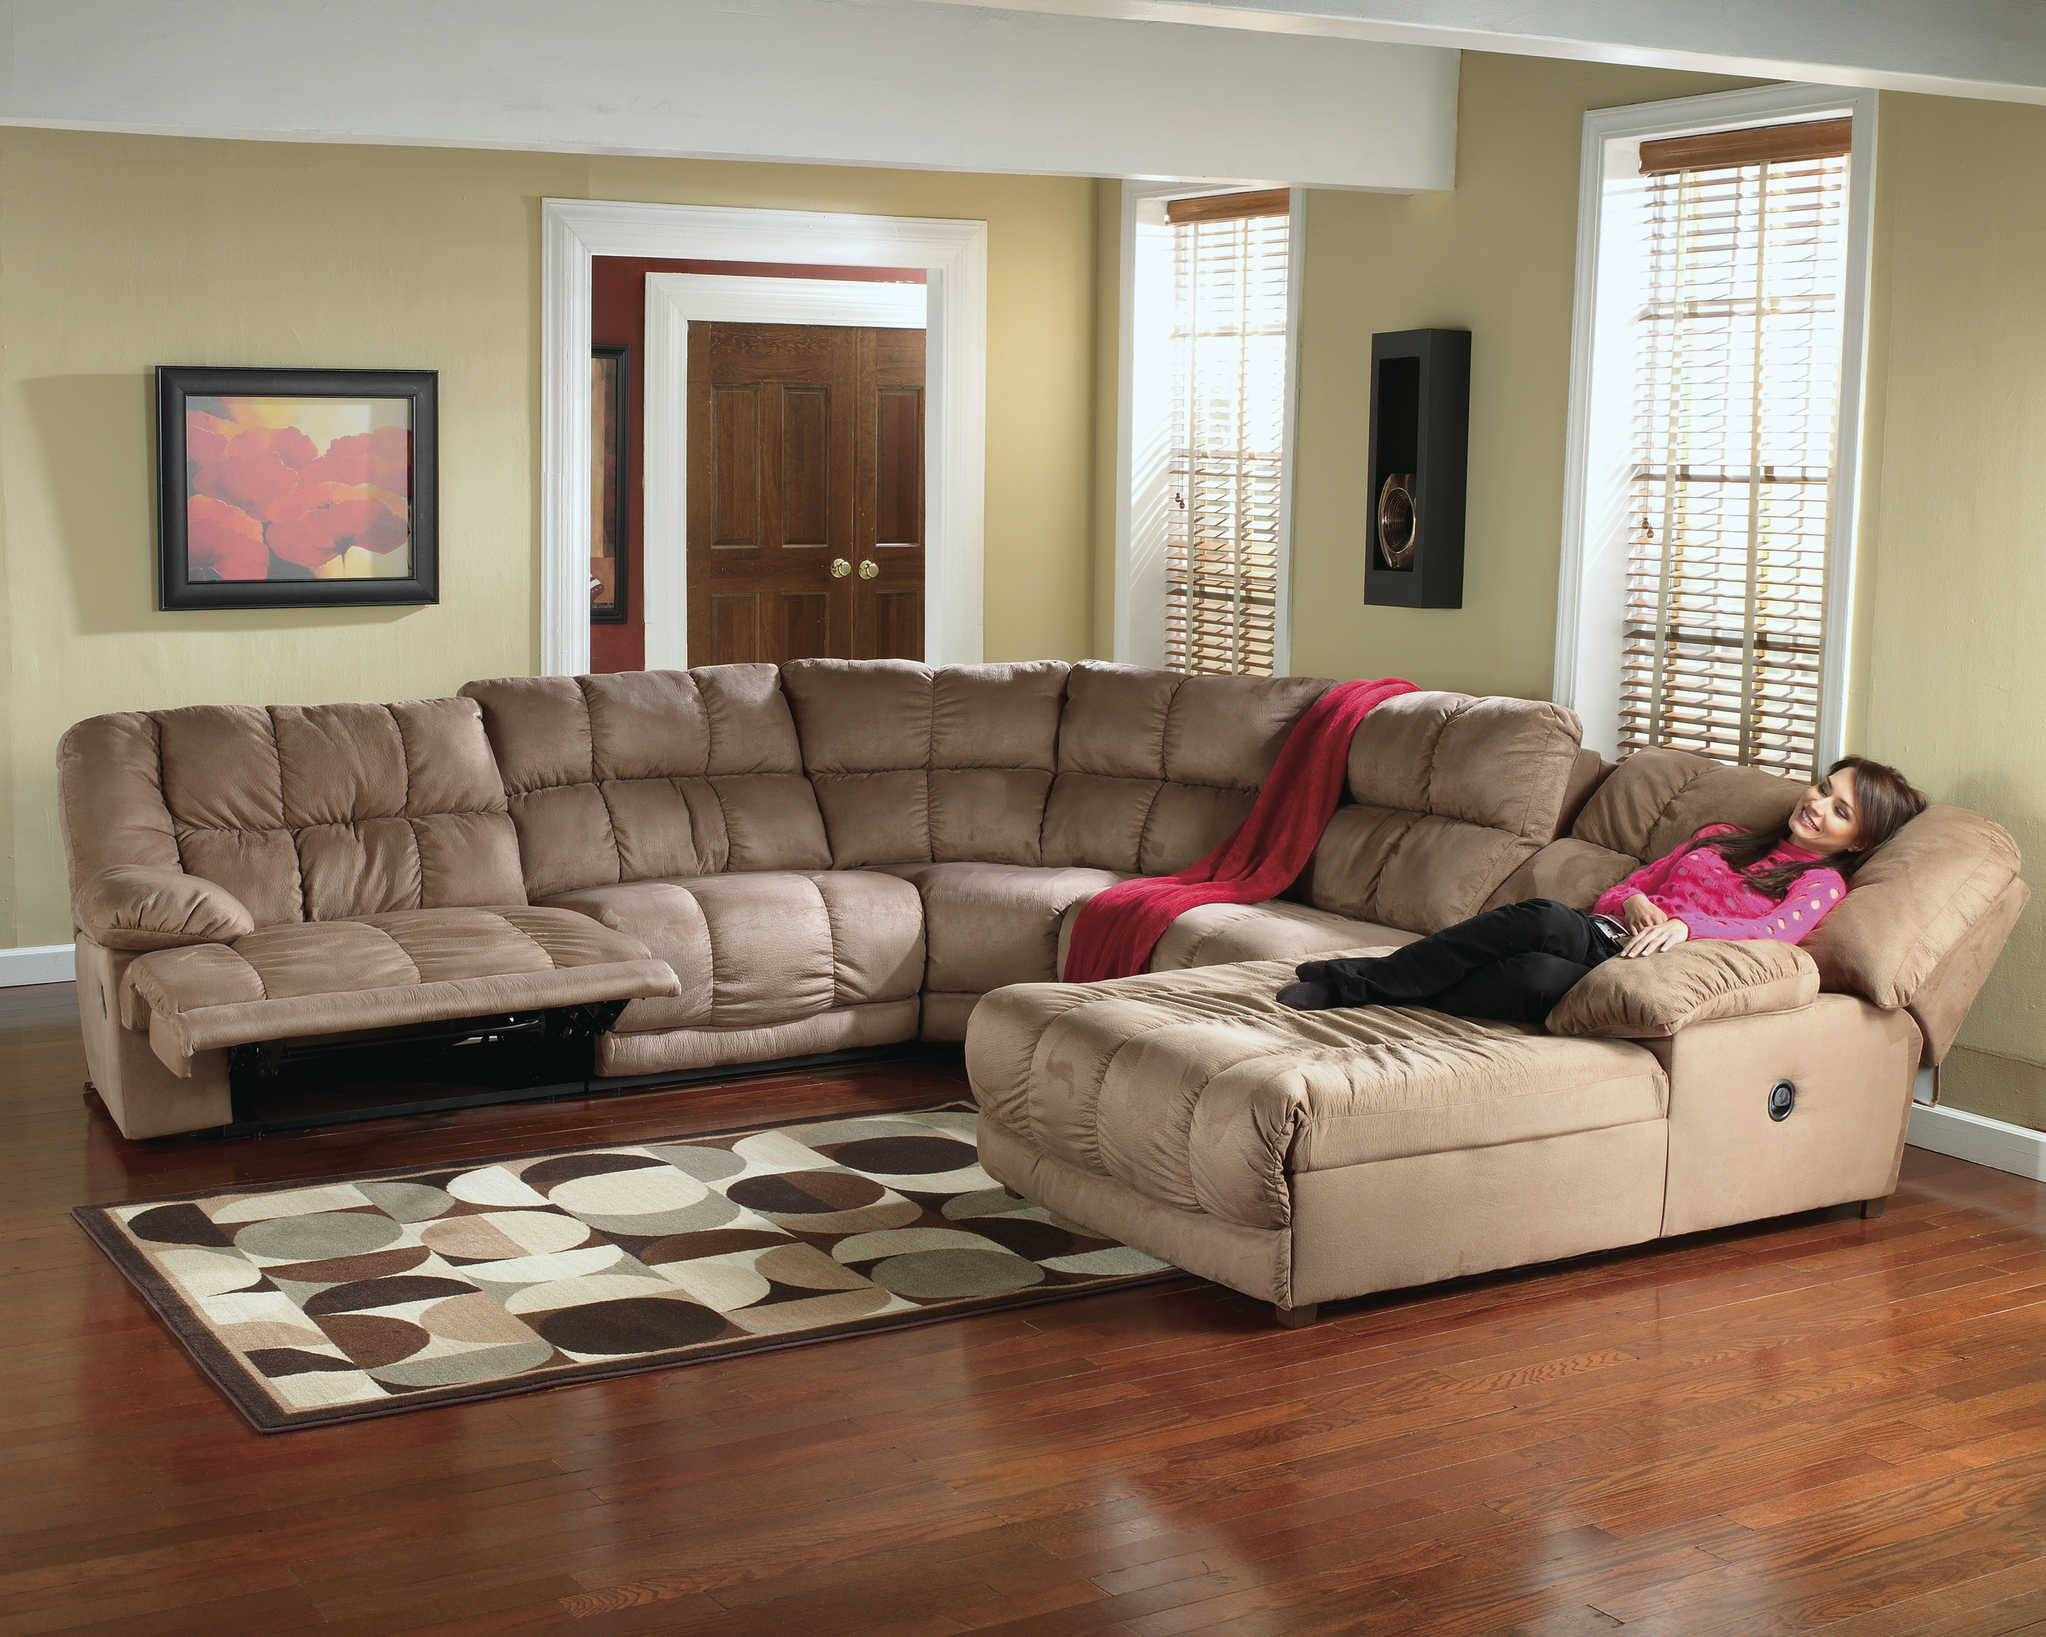 79 Exciting Large Sectional Sofas With Recliners Home Design | Hoozoo Regarding Florence Large Sofas (Photo 14 of 30)